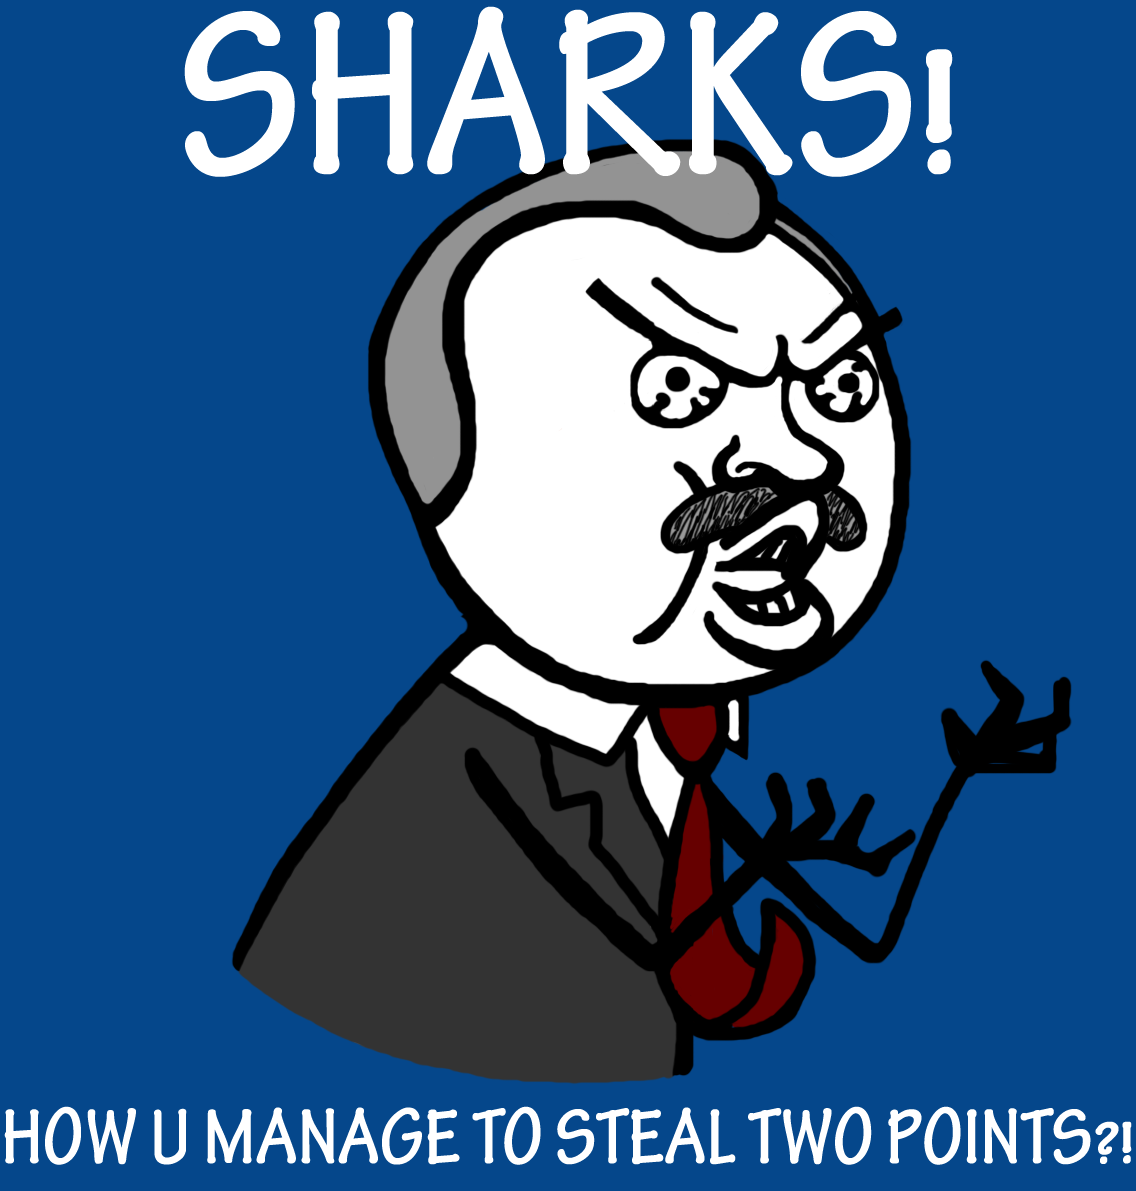 No really, how ddi you manage to win that game last night, Sharks?